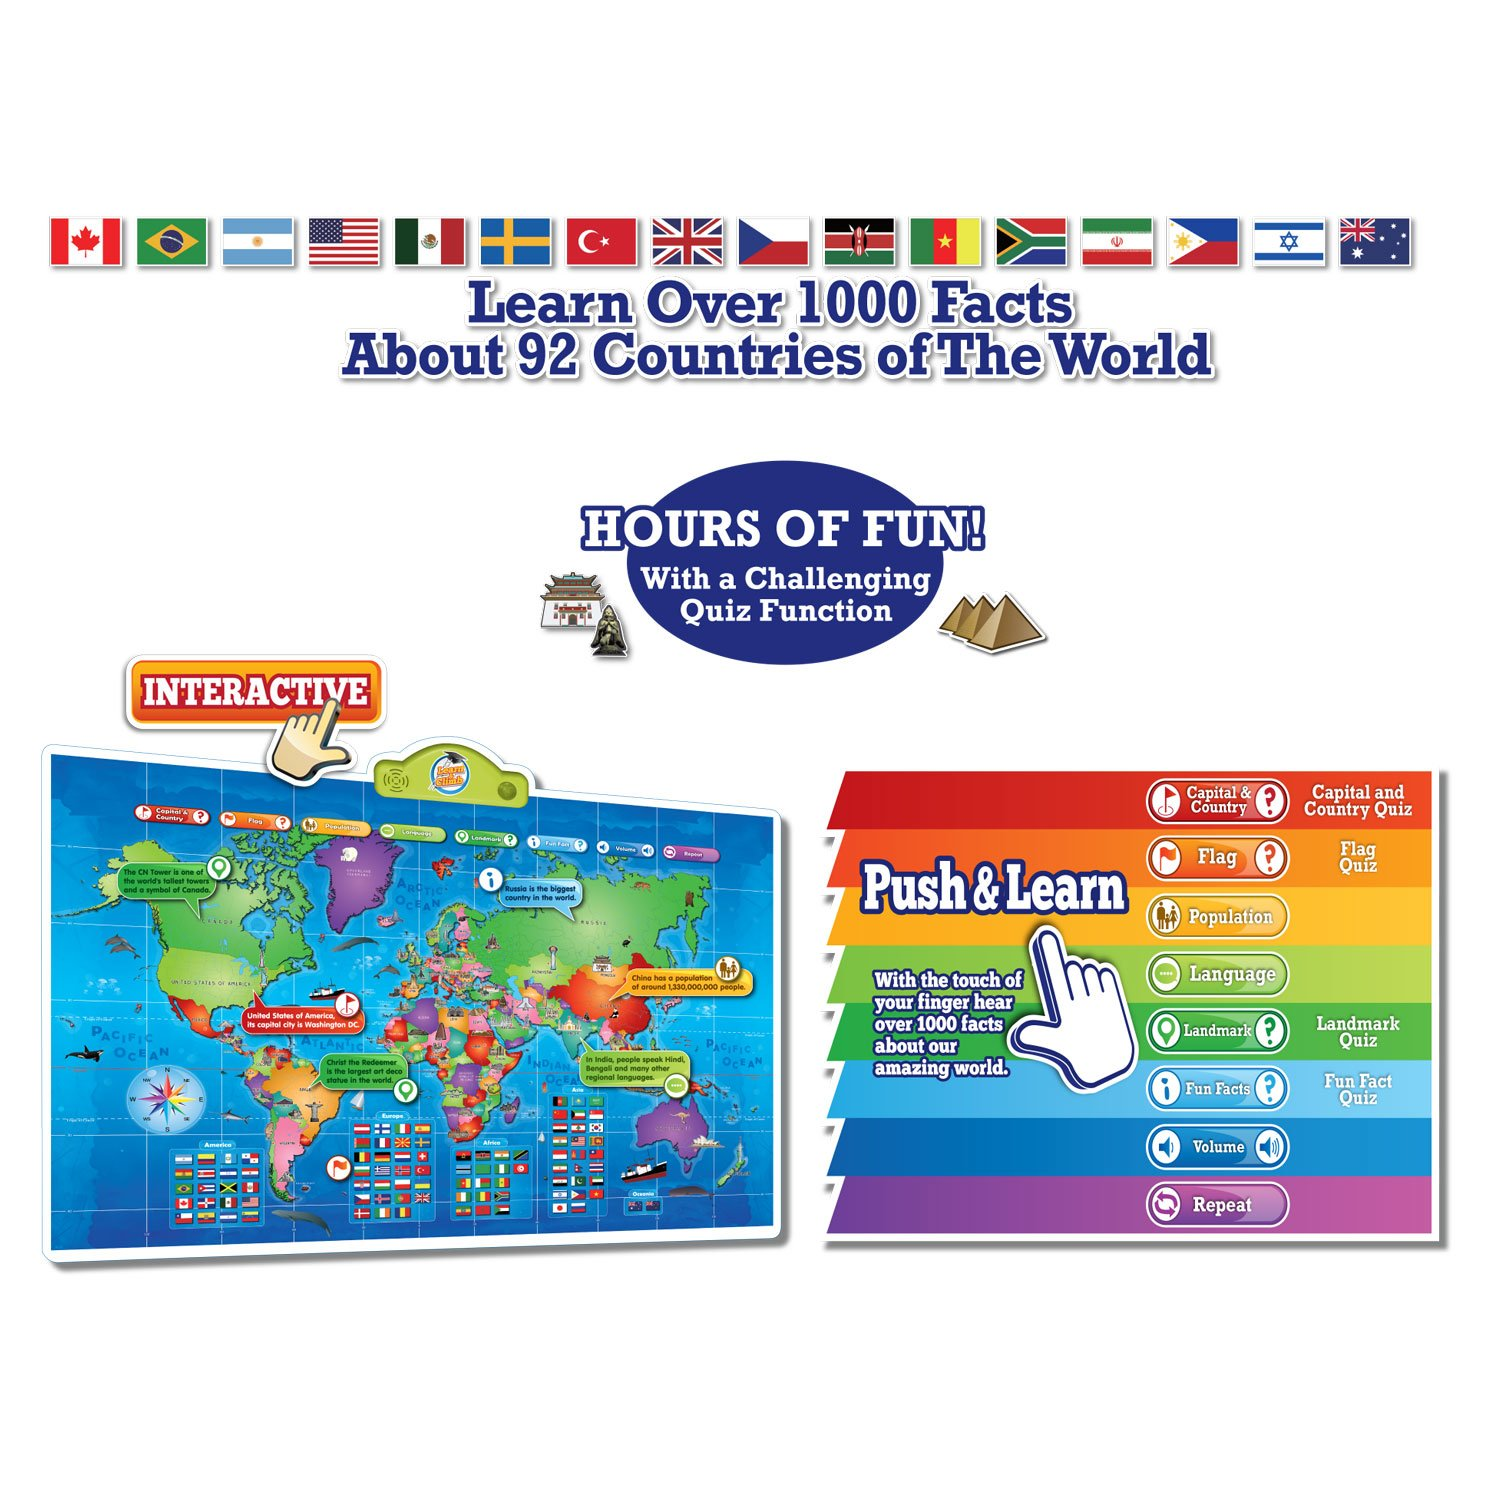 Amazon push to talk kids world map learn over 1000 facts amazon push to talk kids world map learn over 1000 facts quizzes about 92 countries fun educational toys games gumiabroncs Gallery